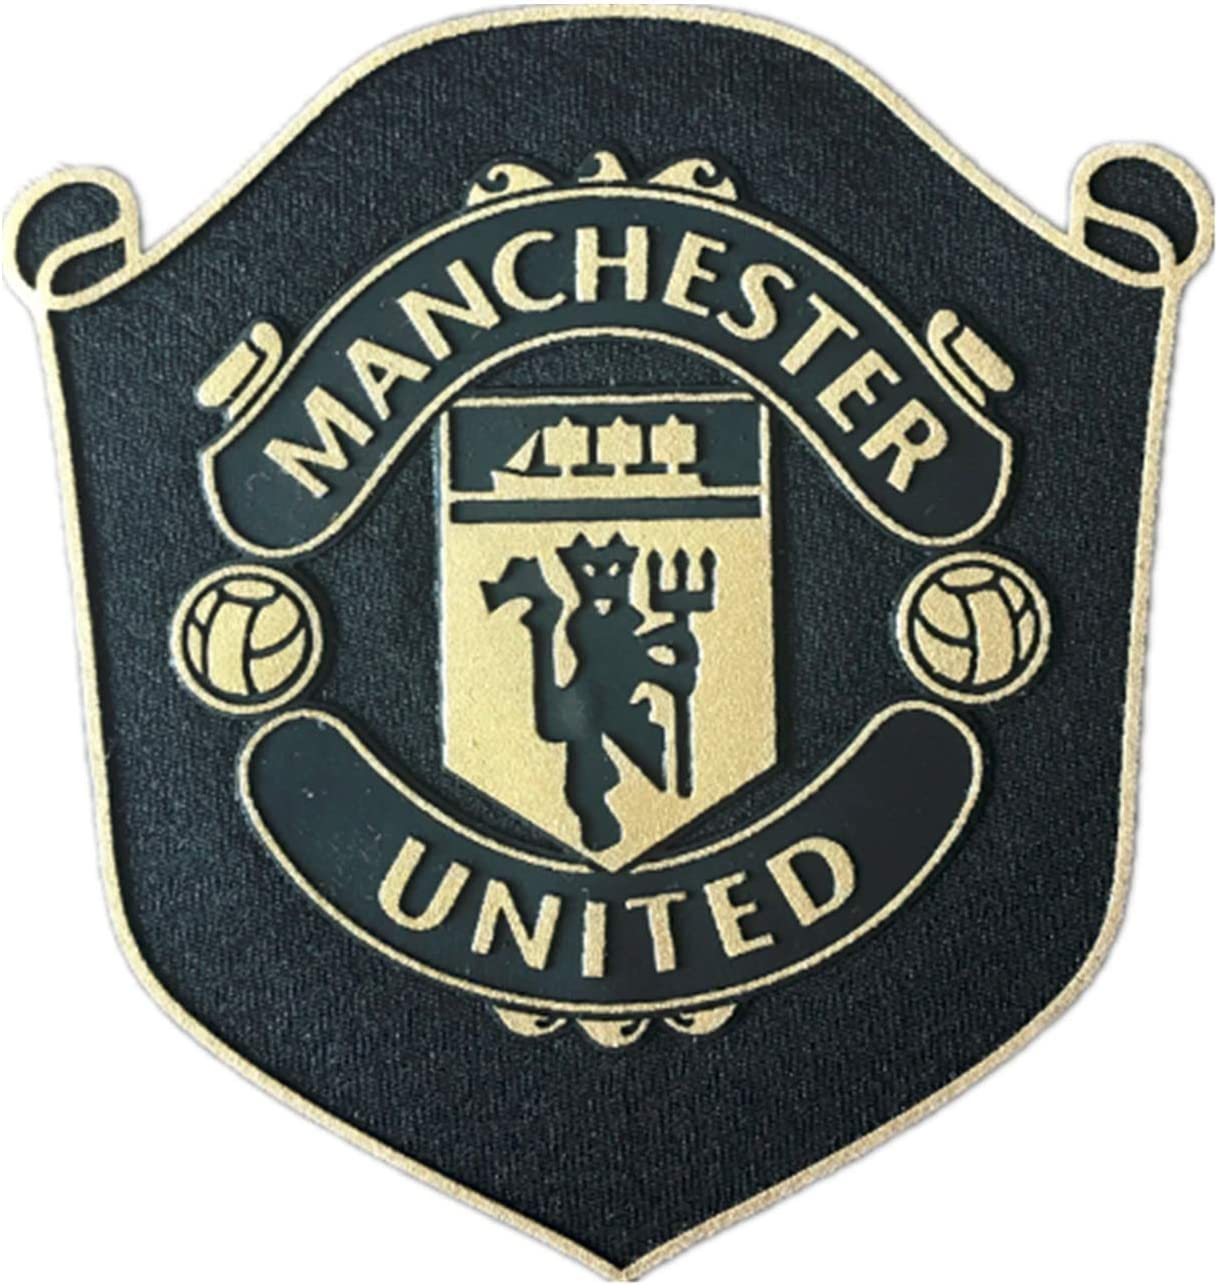 Best Badge 2019 2020 Manchester United Crest Red Devil Football Kit Shirt Iron On Badge Patch Amazon Co Uk Sports Outdoors